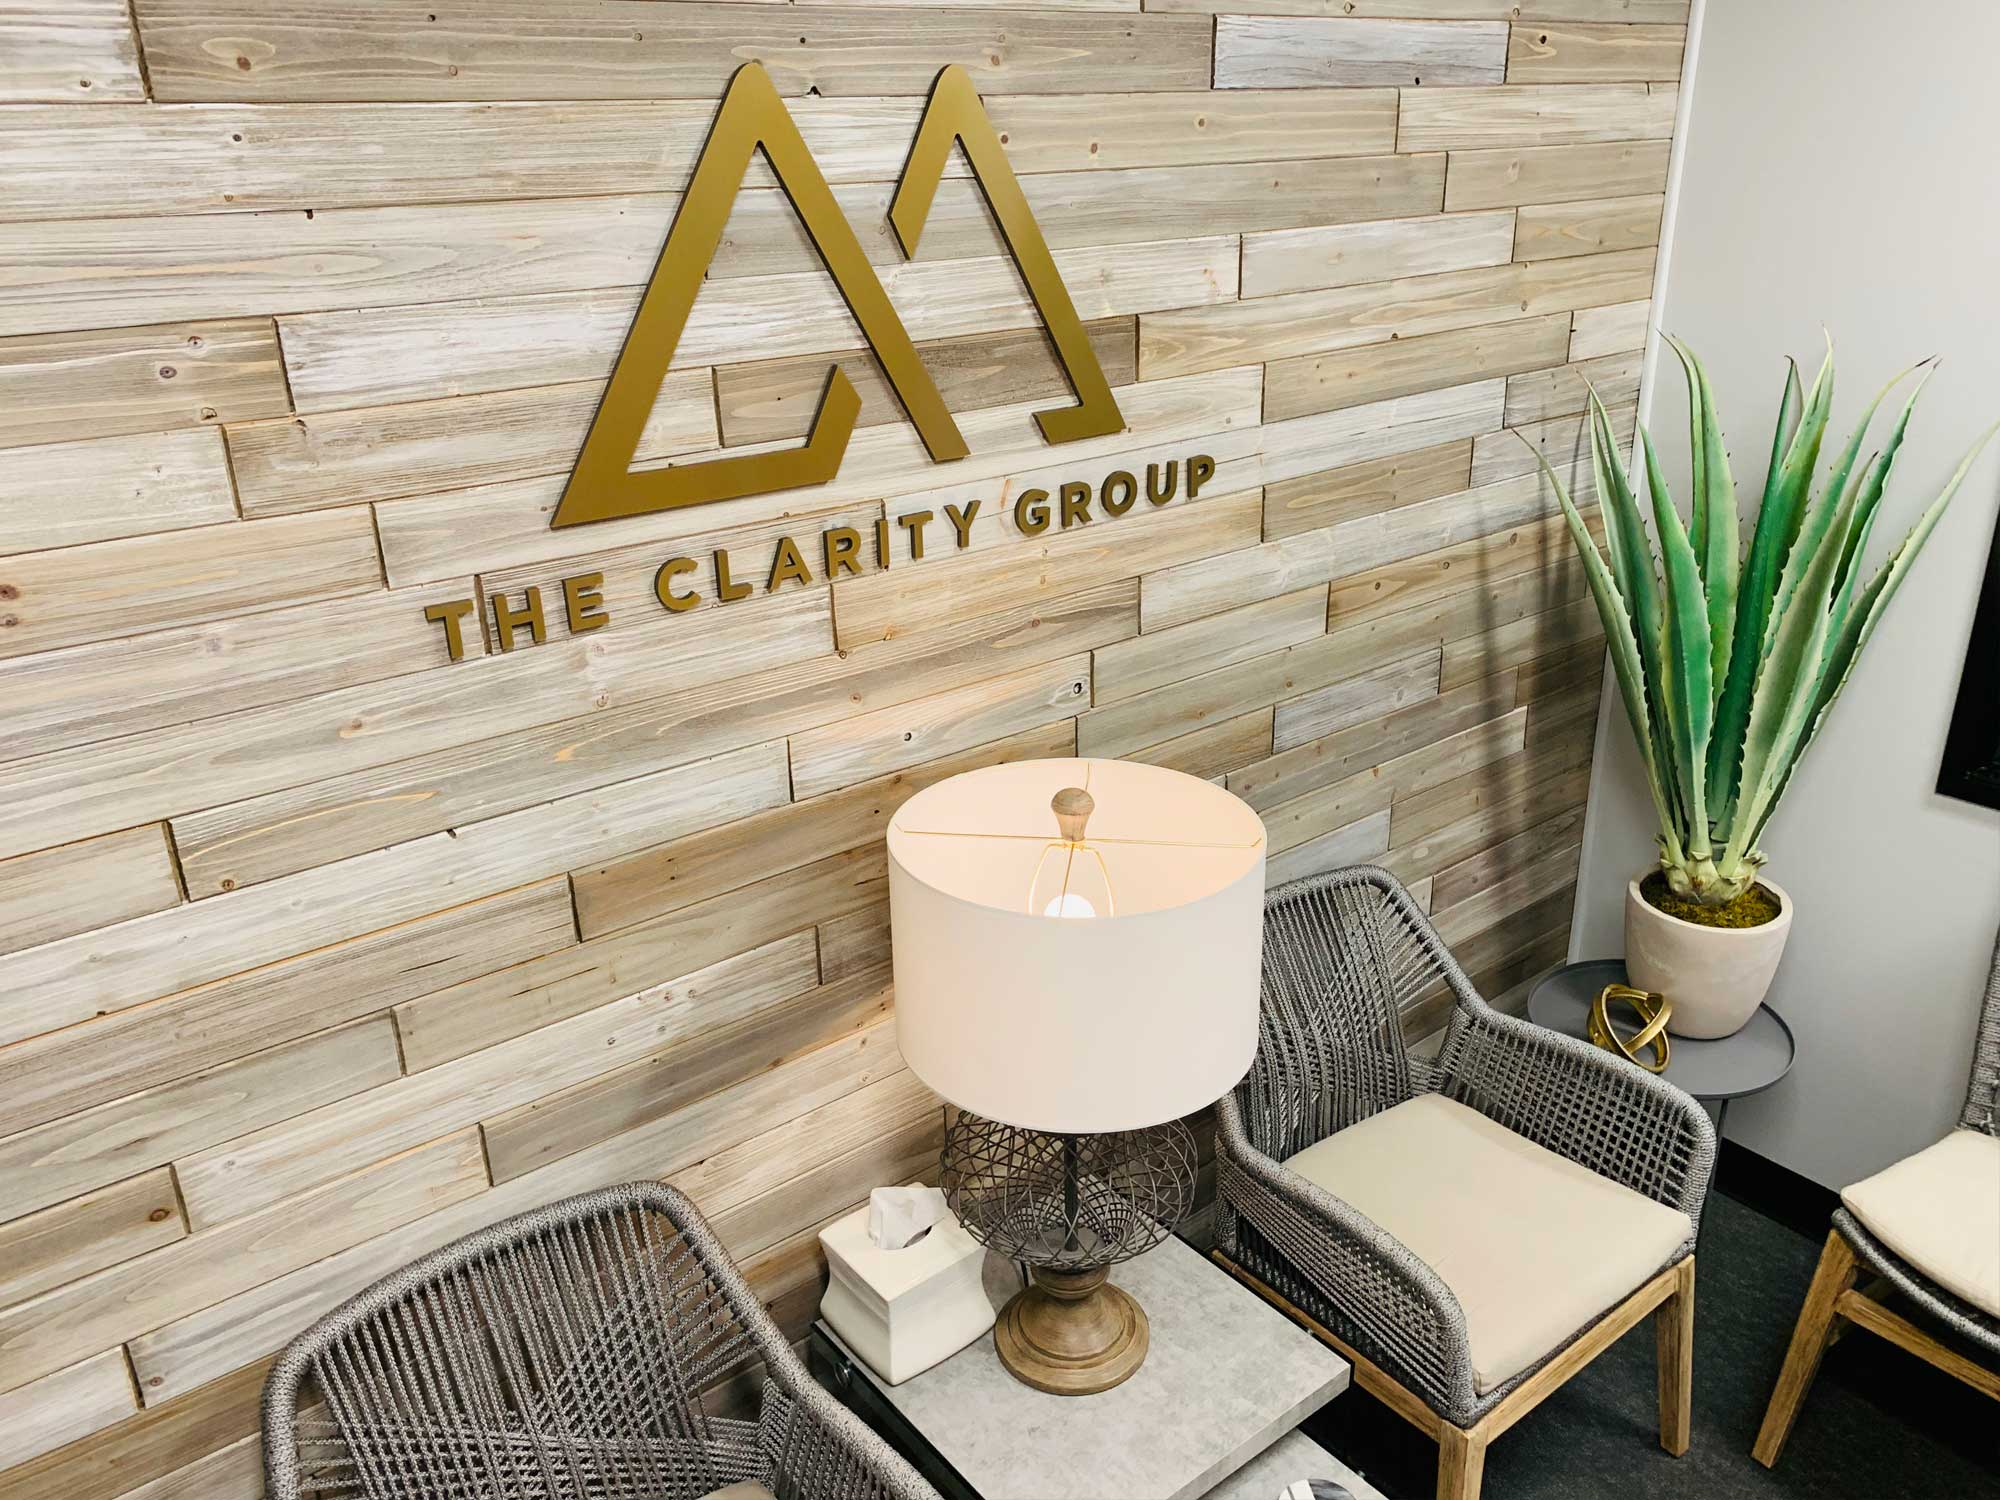 The Clarity Group Offfice